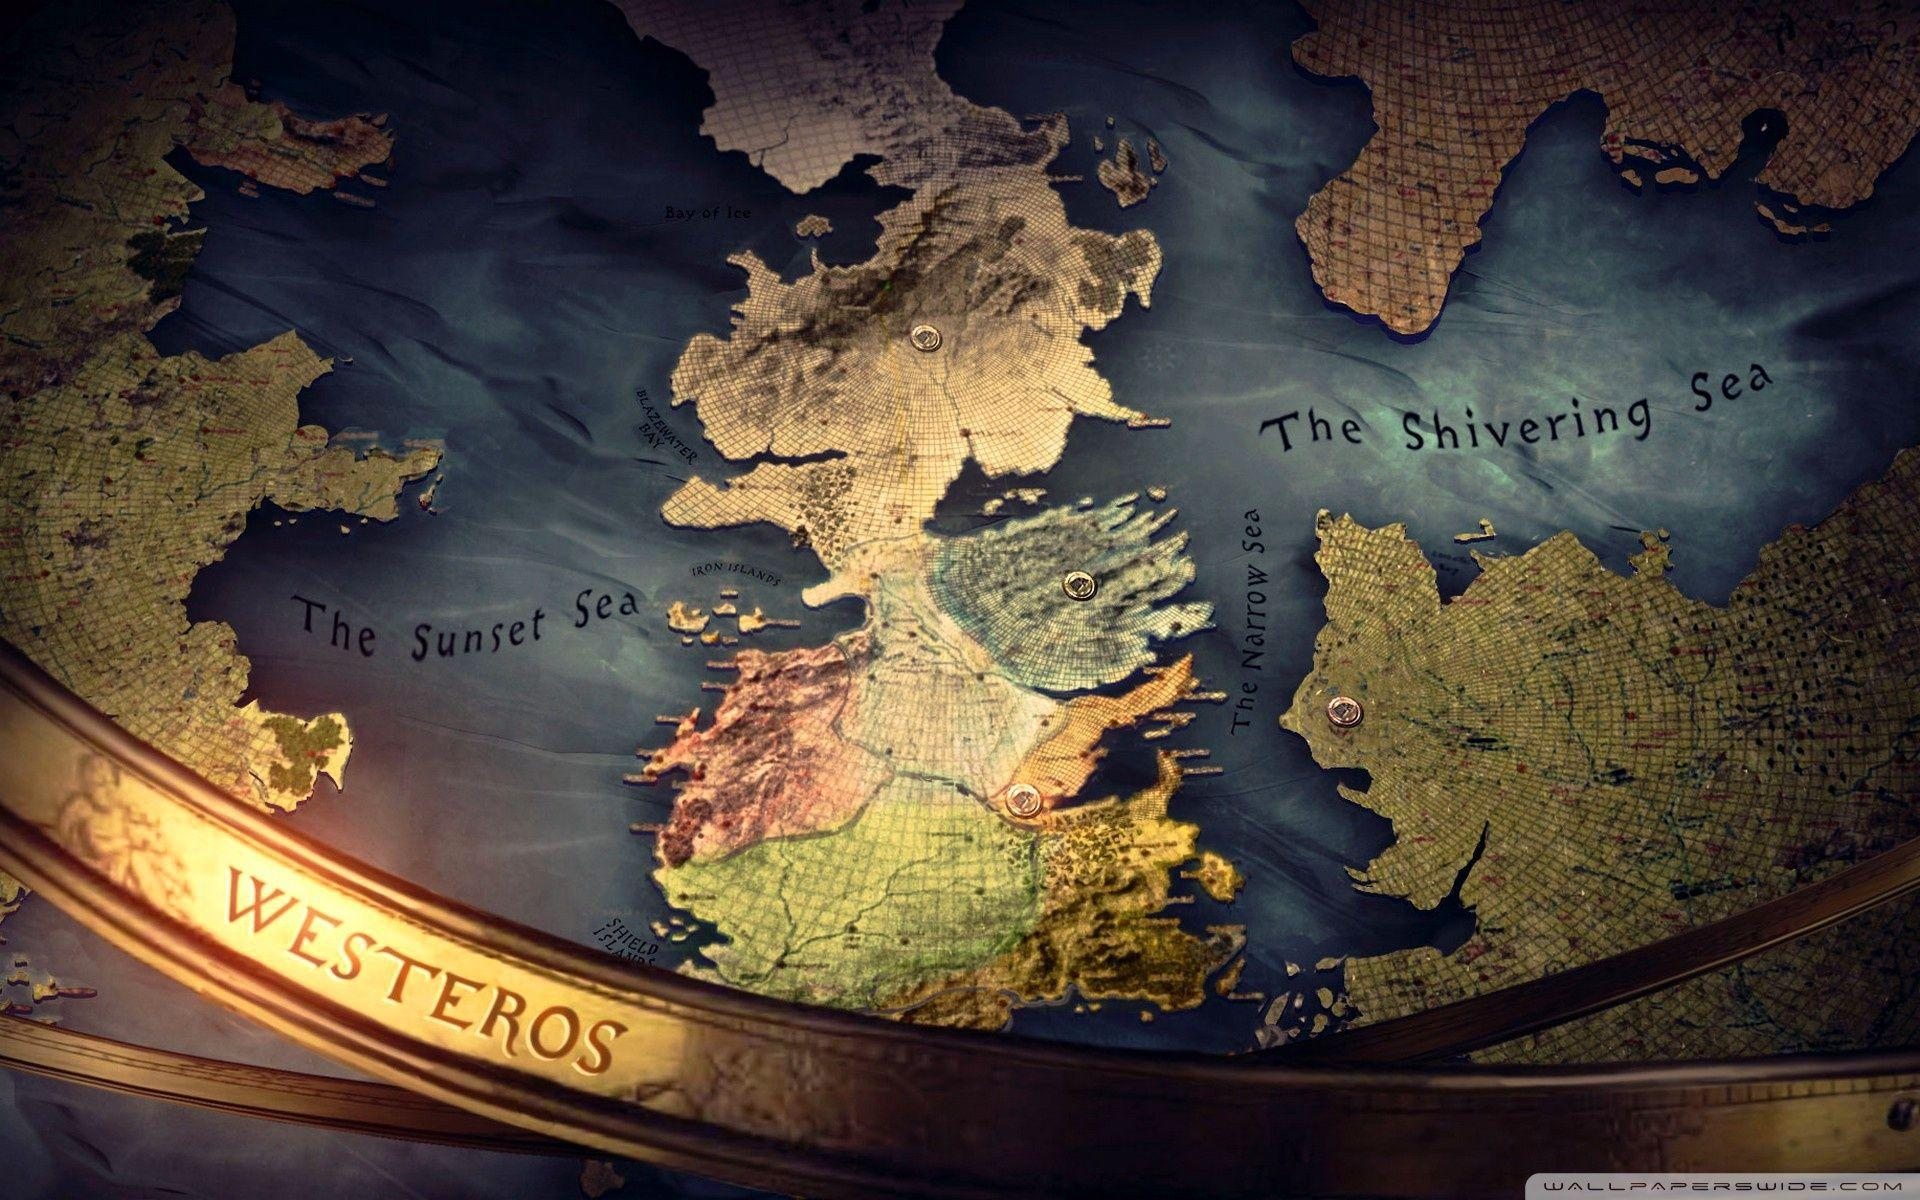 Game Of Thrones Map Wallpapers - Wallpaper Cave Game Of Thrones Map High Res on tamriel map high res, game of thrones artwork, game of thrones screensaver, westeros map high res, united states map high res, game of thrones ice wall prop, game of thrones house sigils, game of thrones art, pillars of eternity map high res, the crew map high res,